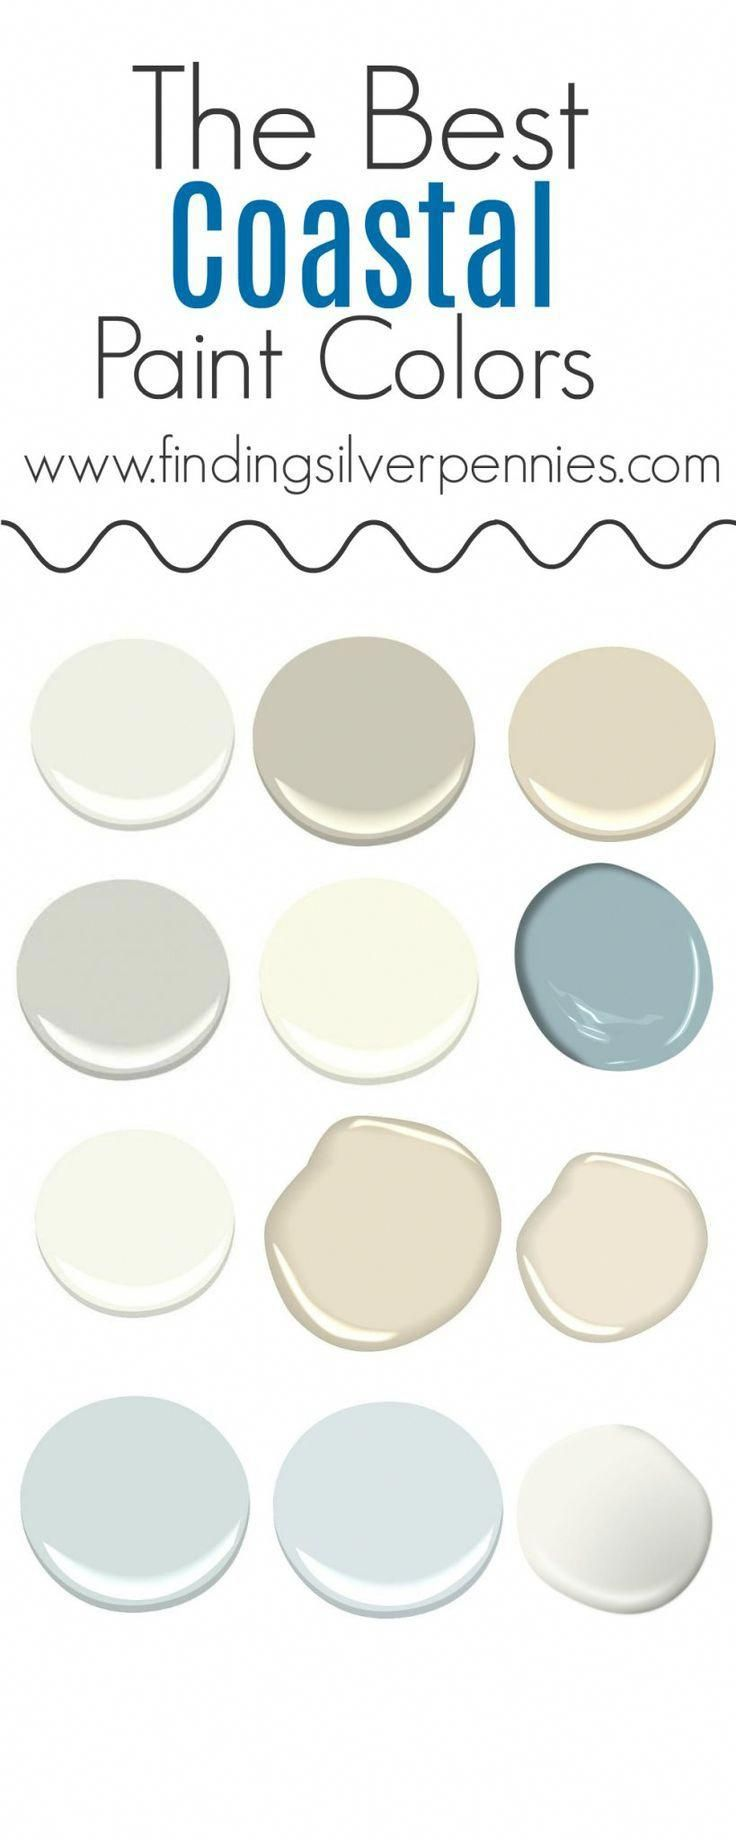 Nautical Paint Colors The Best Coastal Paint Colors I Finding Silver Pennies